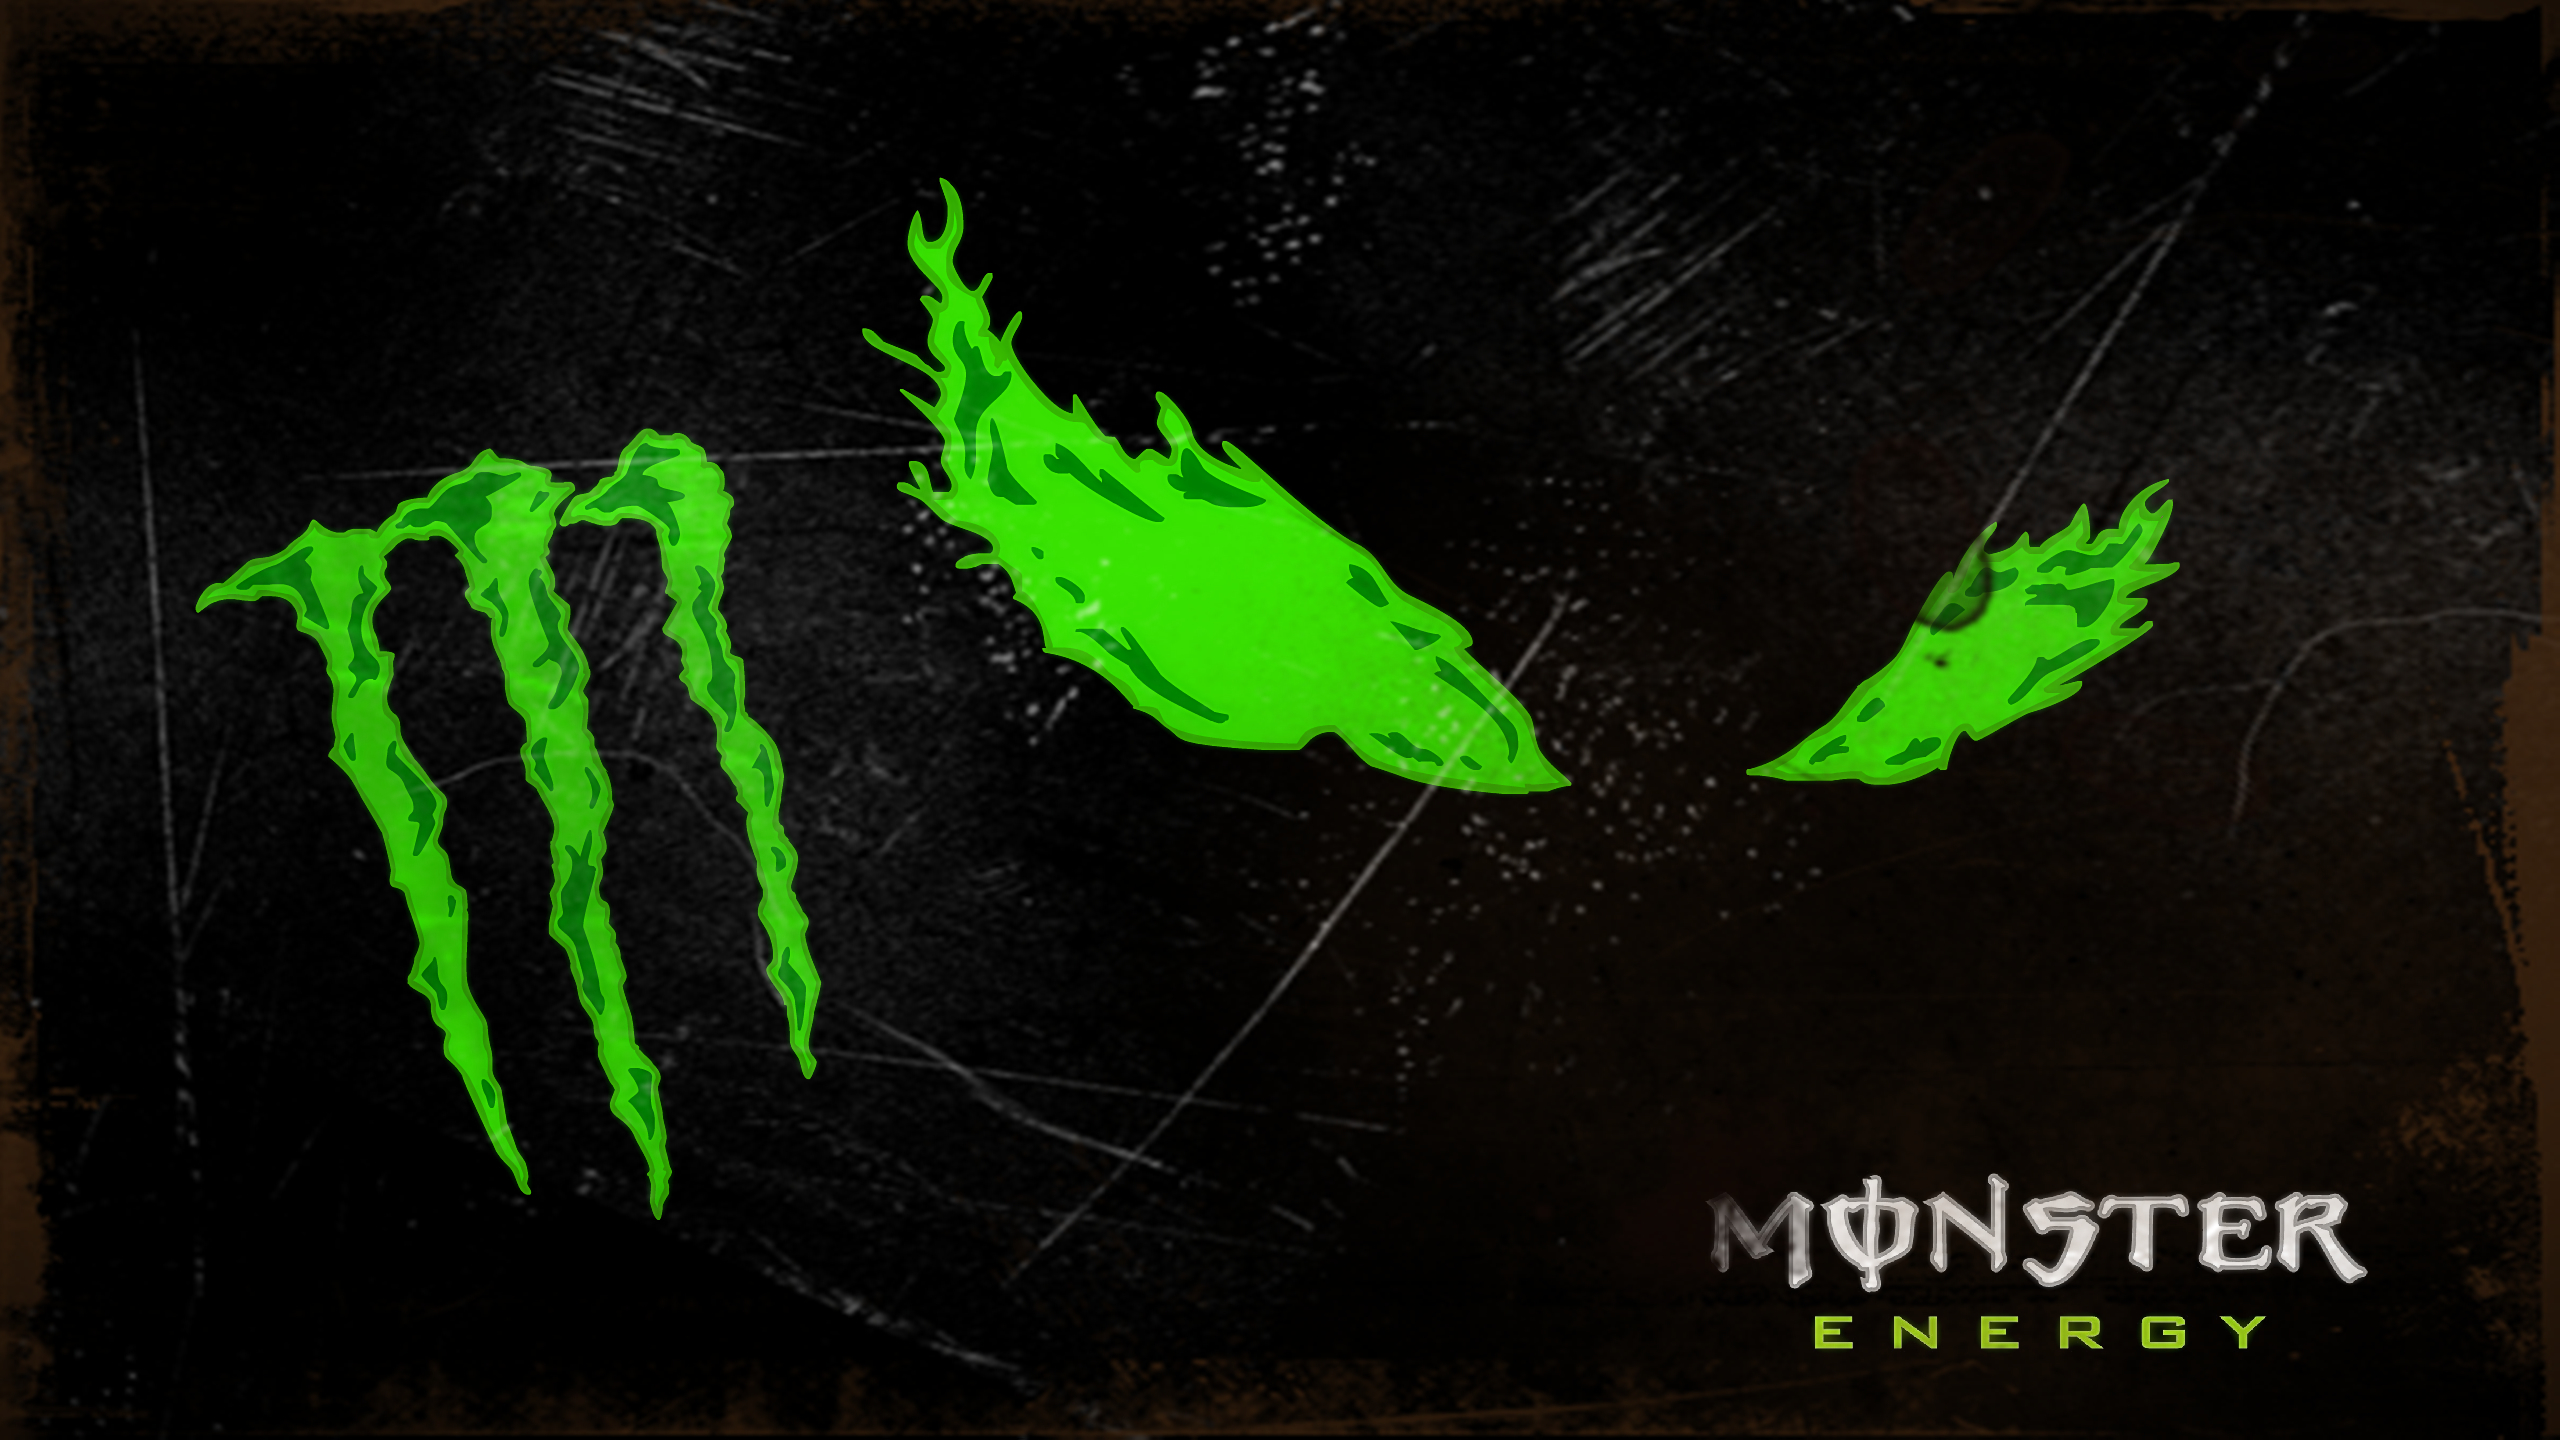 monster energy Animals HD Wallpaper